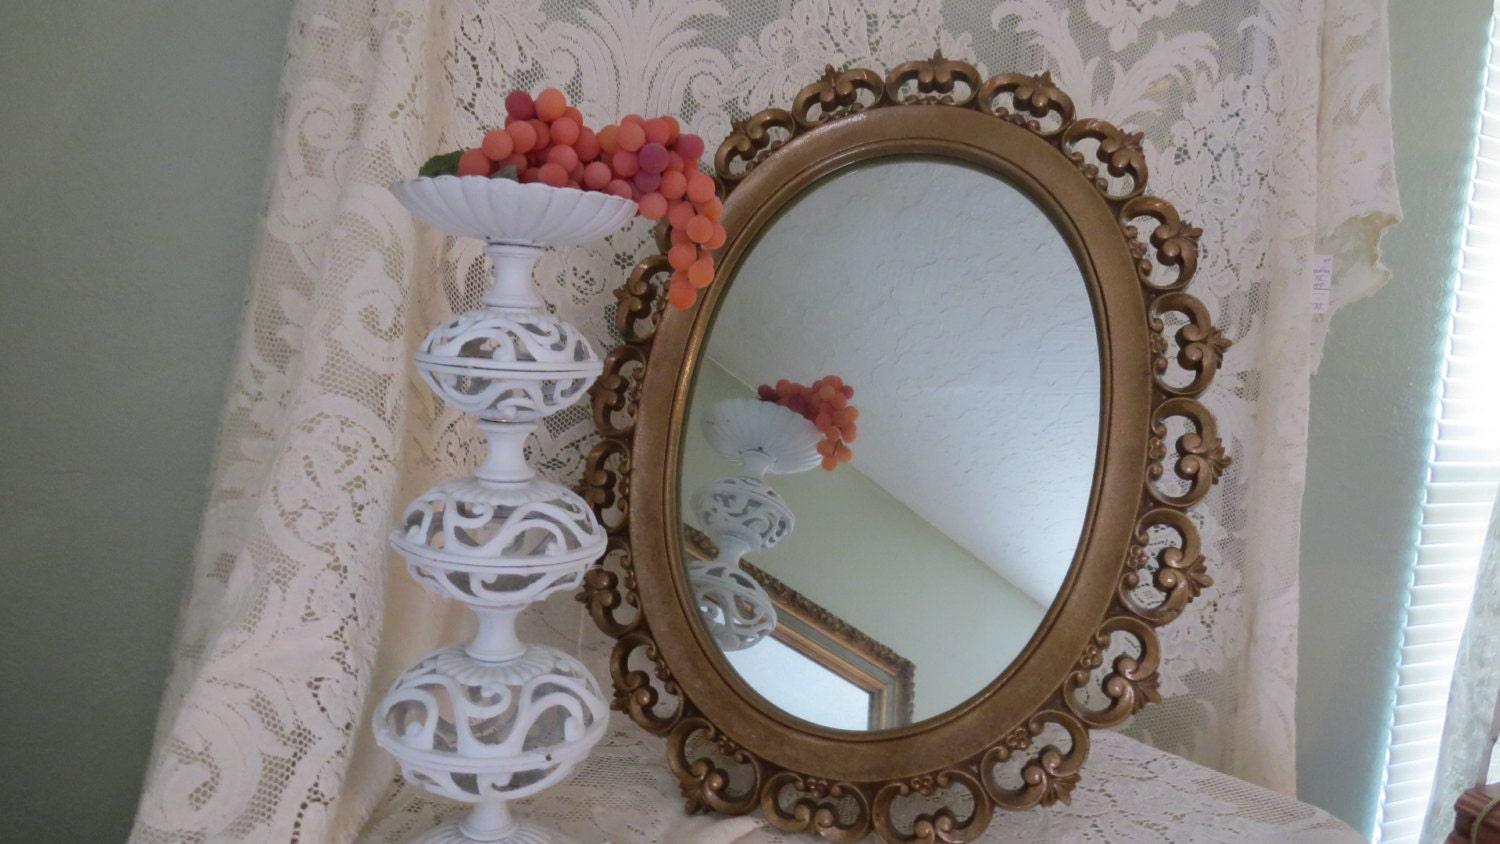 Ornate baroque mirror mid century wall home decor by for Baroque home accessories